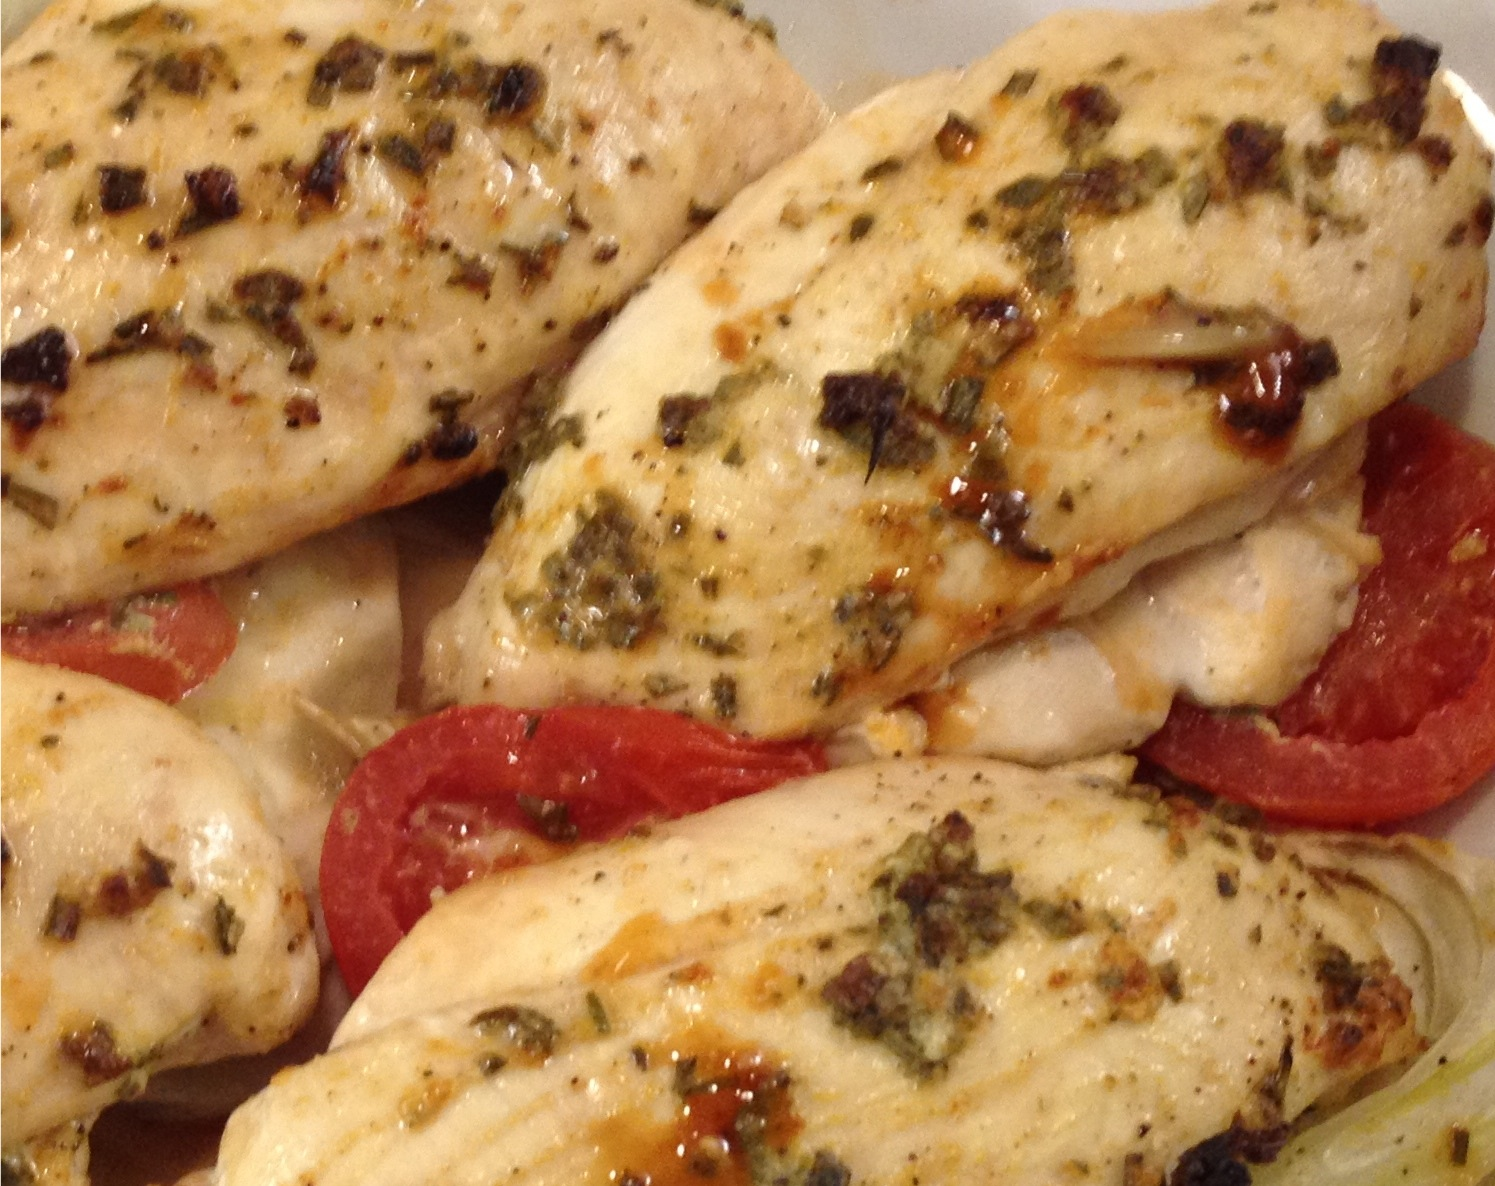 Chicken breasts roasted on tomatoes and fennel.